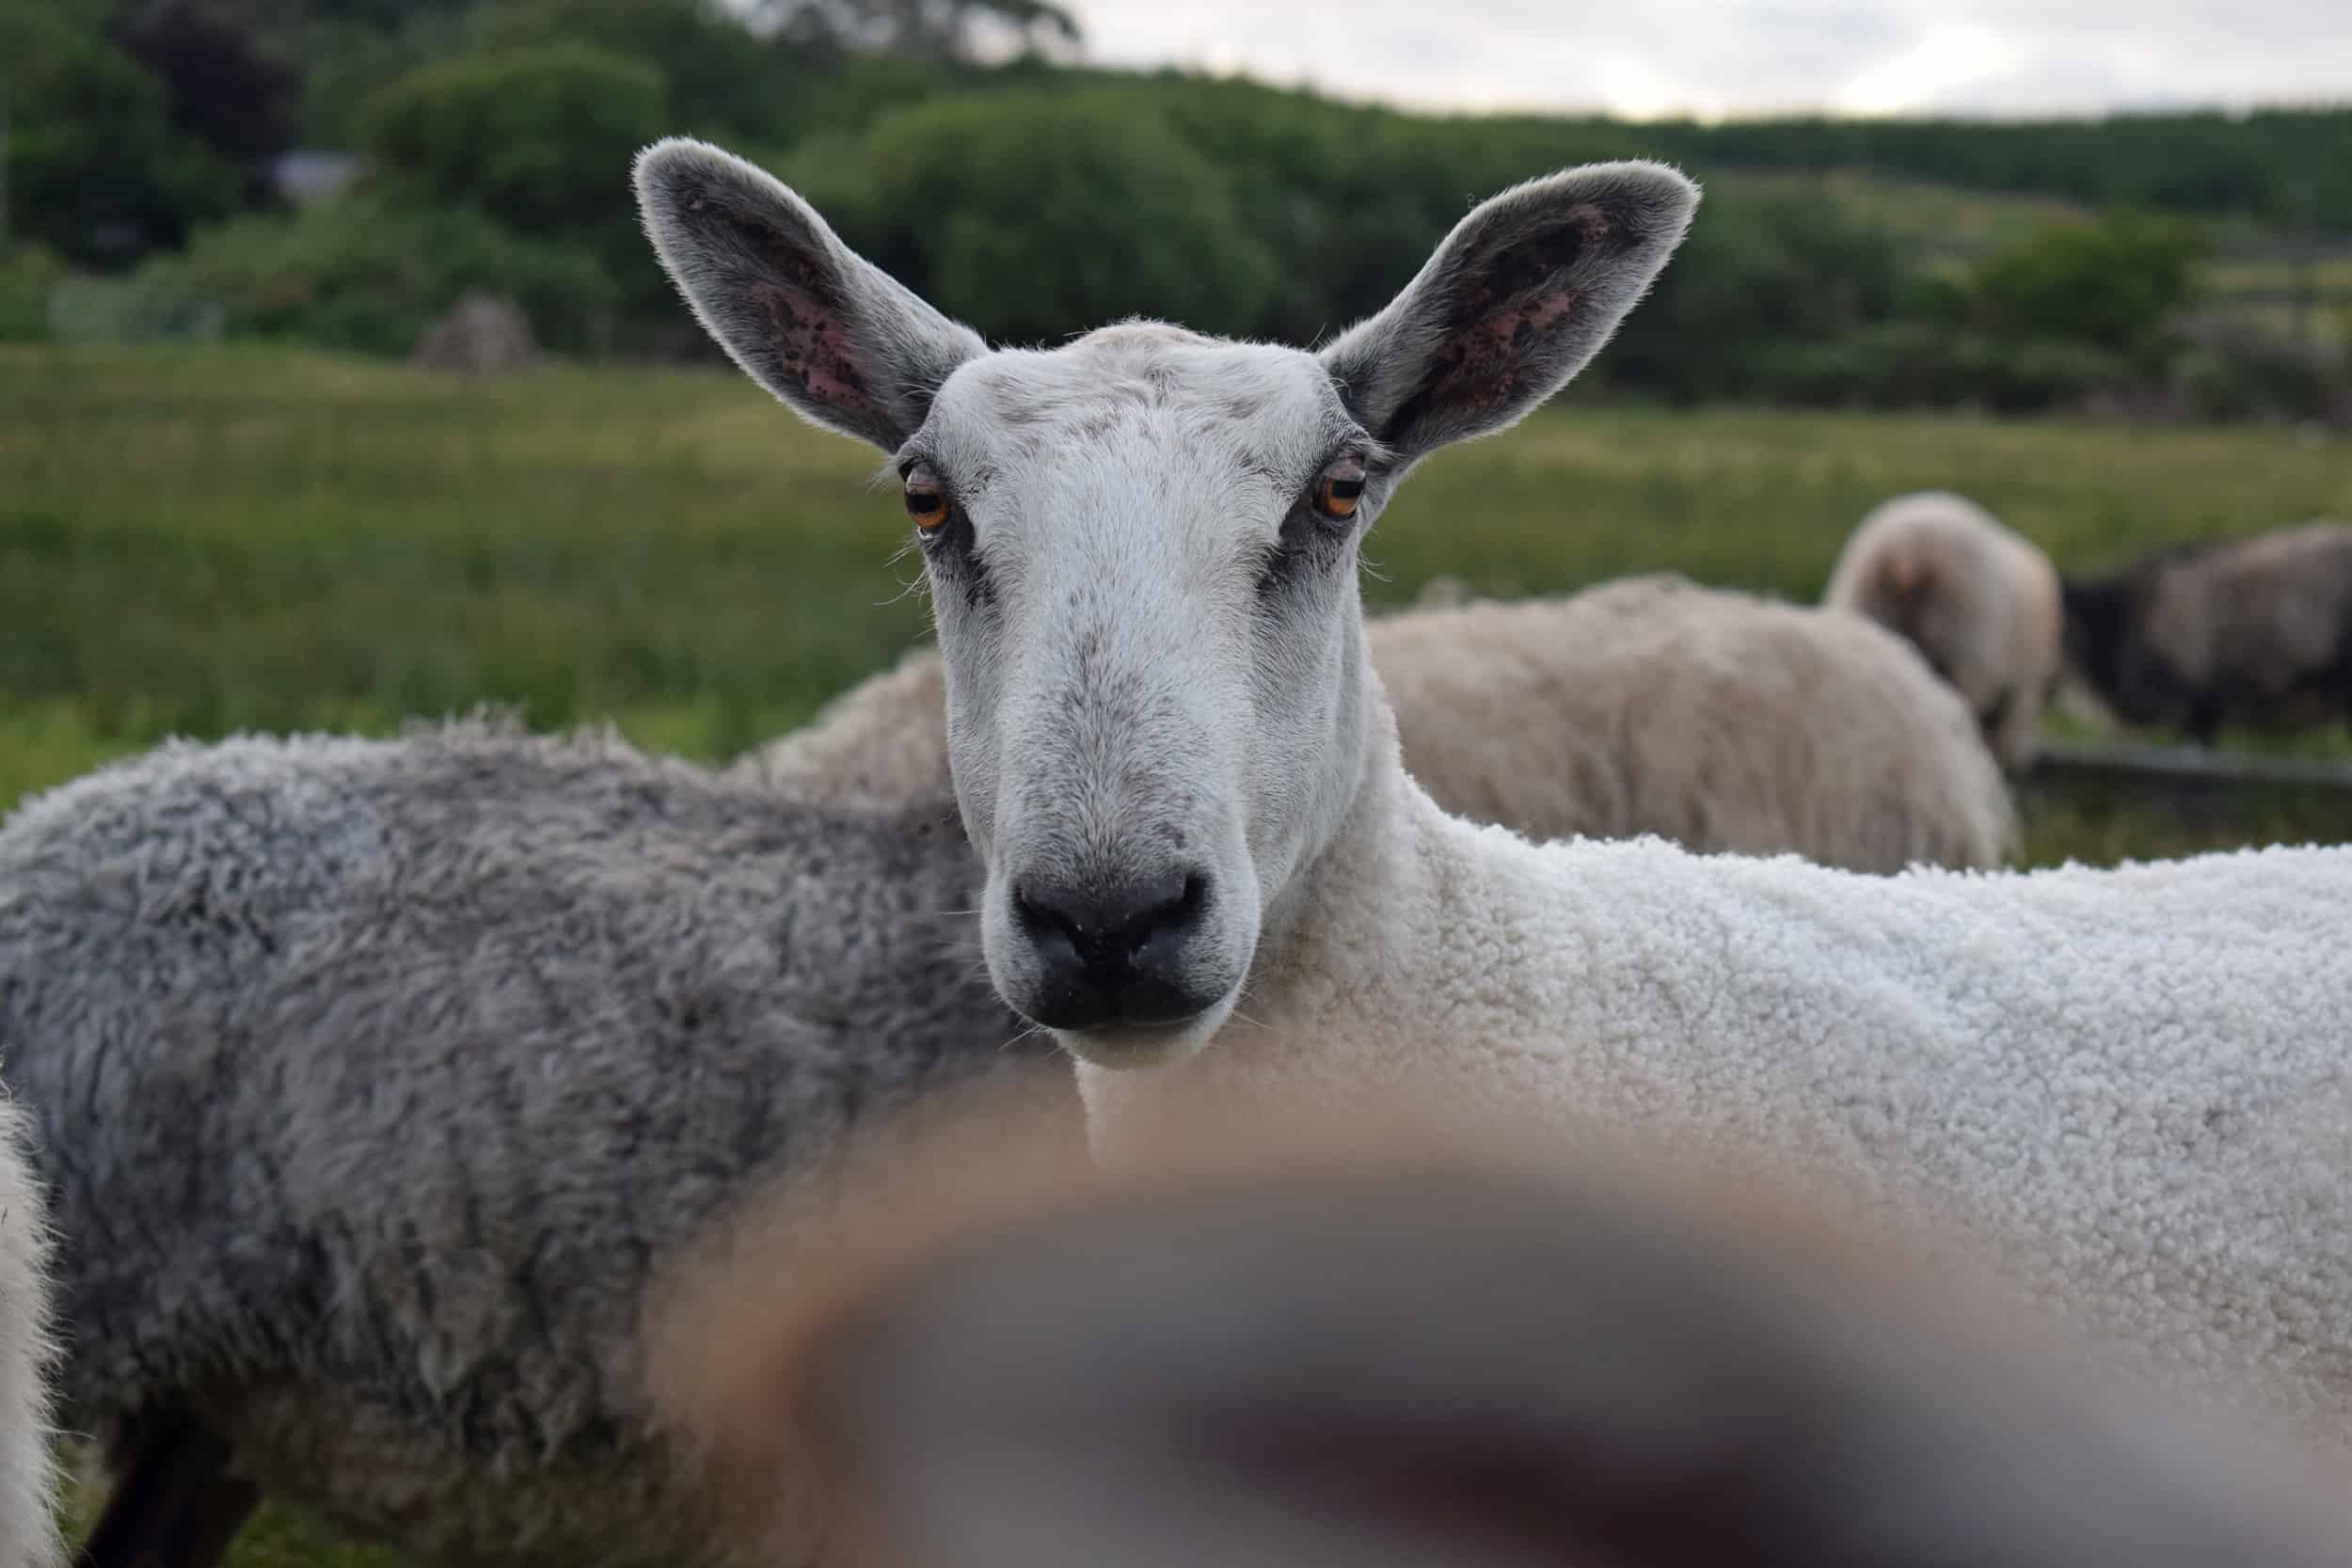 Lily blueface leicester sheep pet sheep